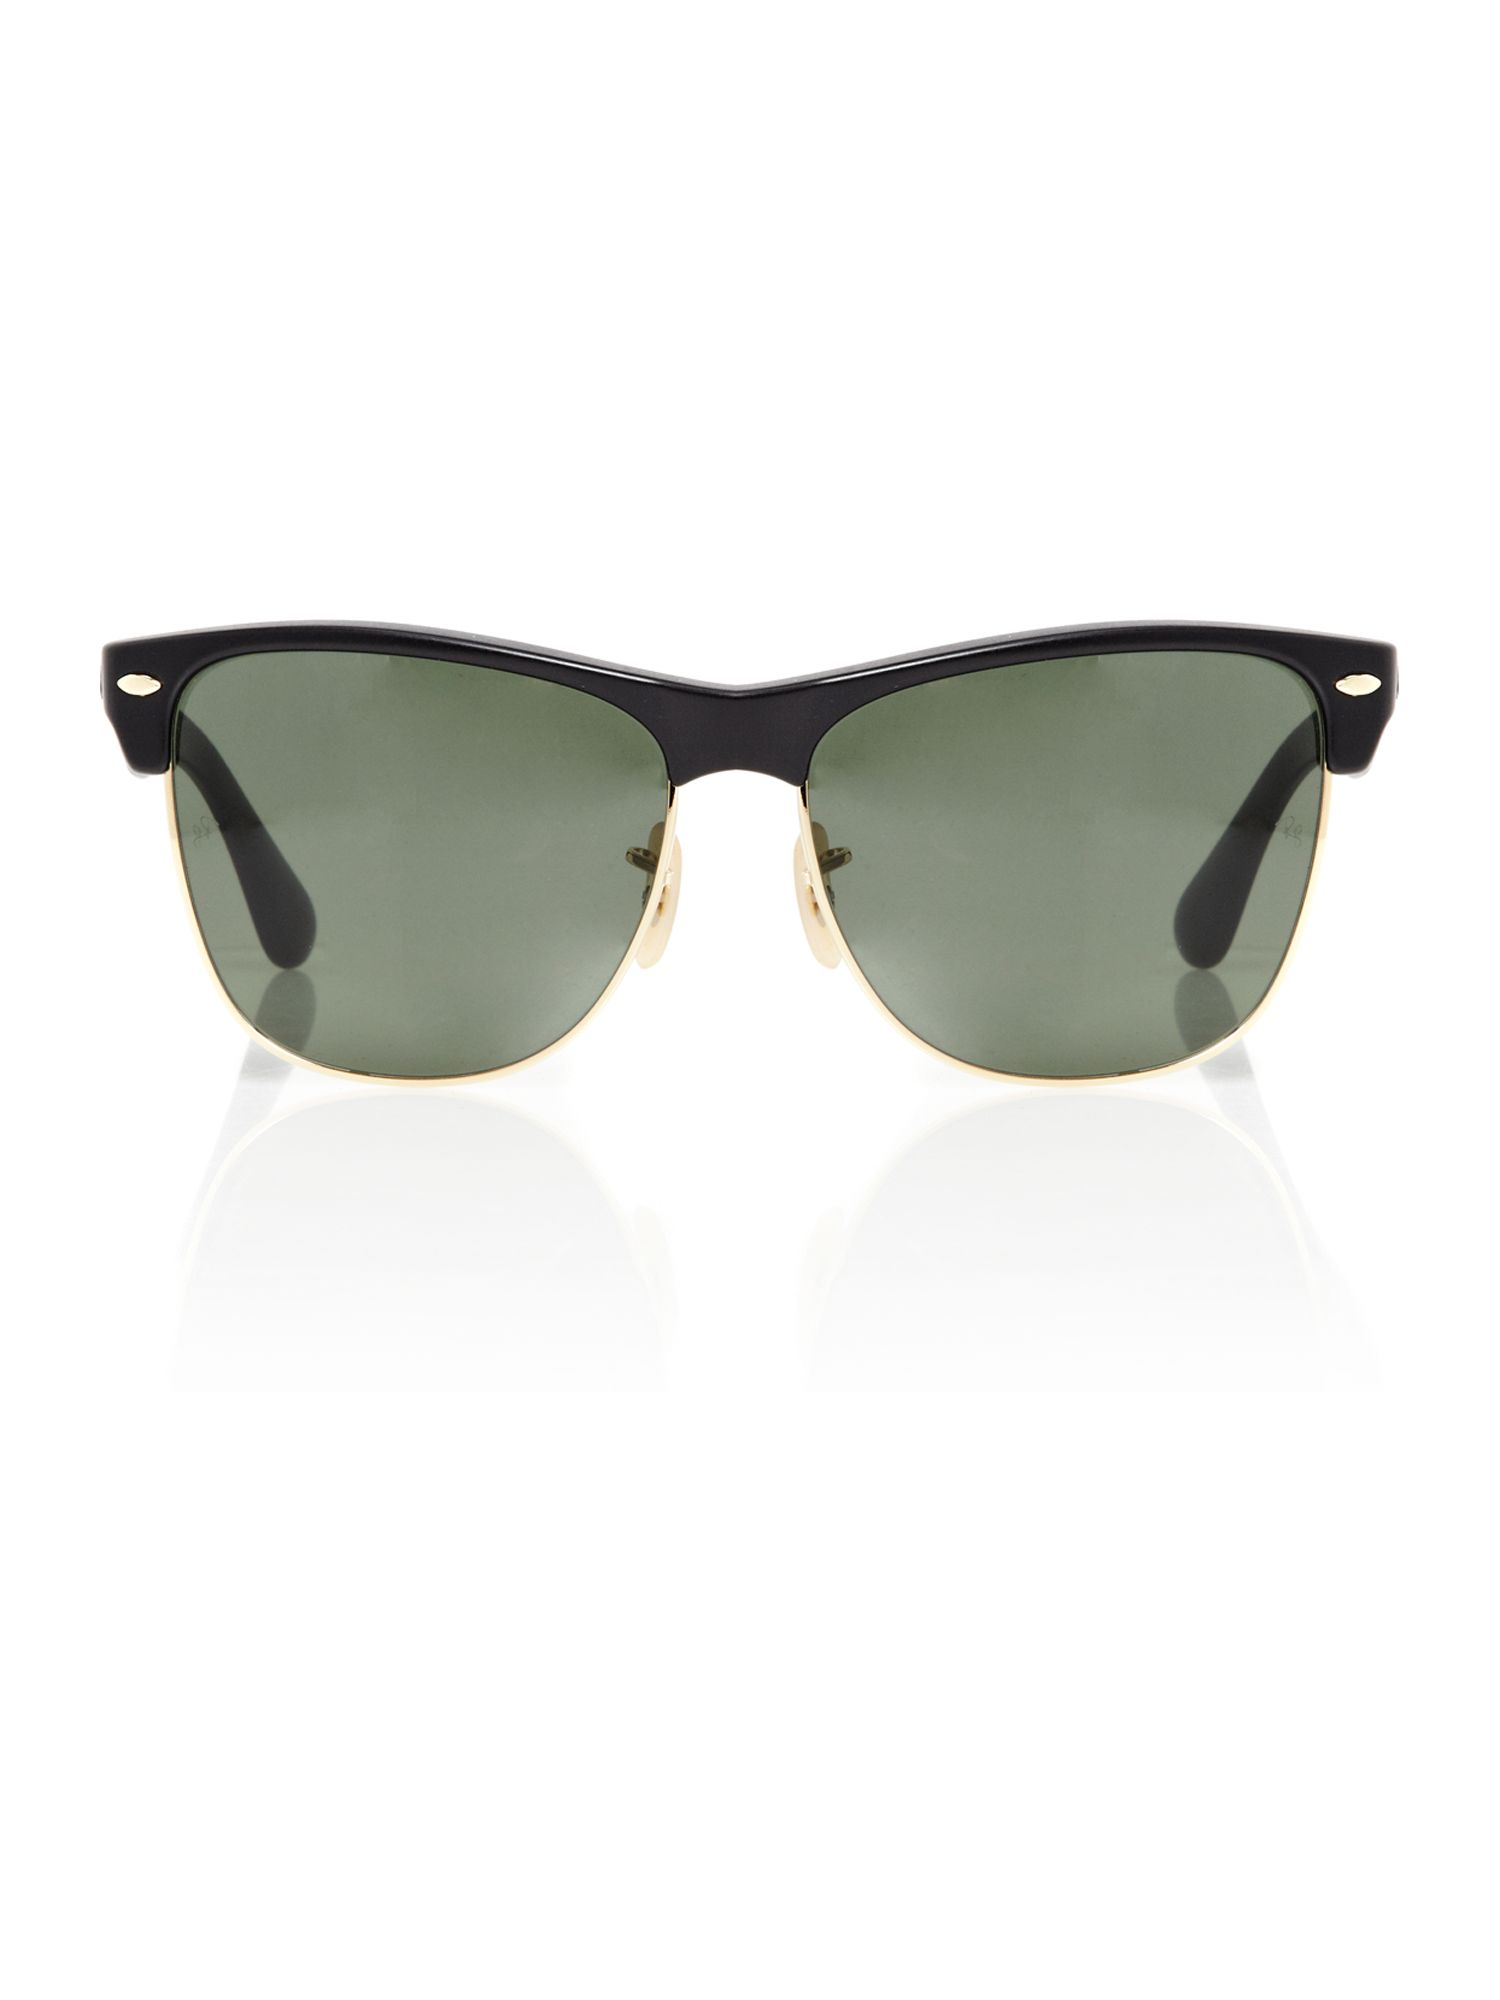 Unisex RB4175 Clubmaster New Black Sunglasses